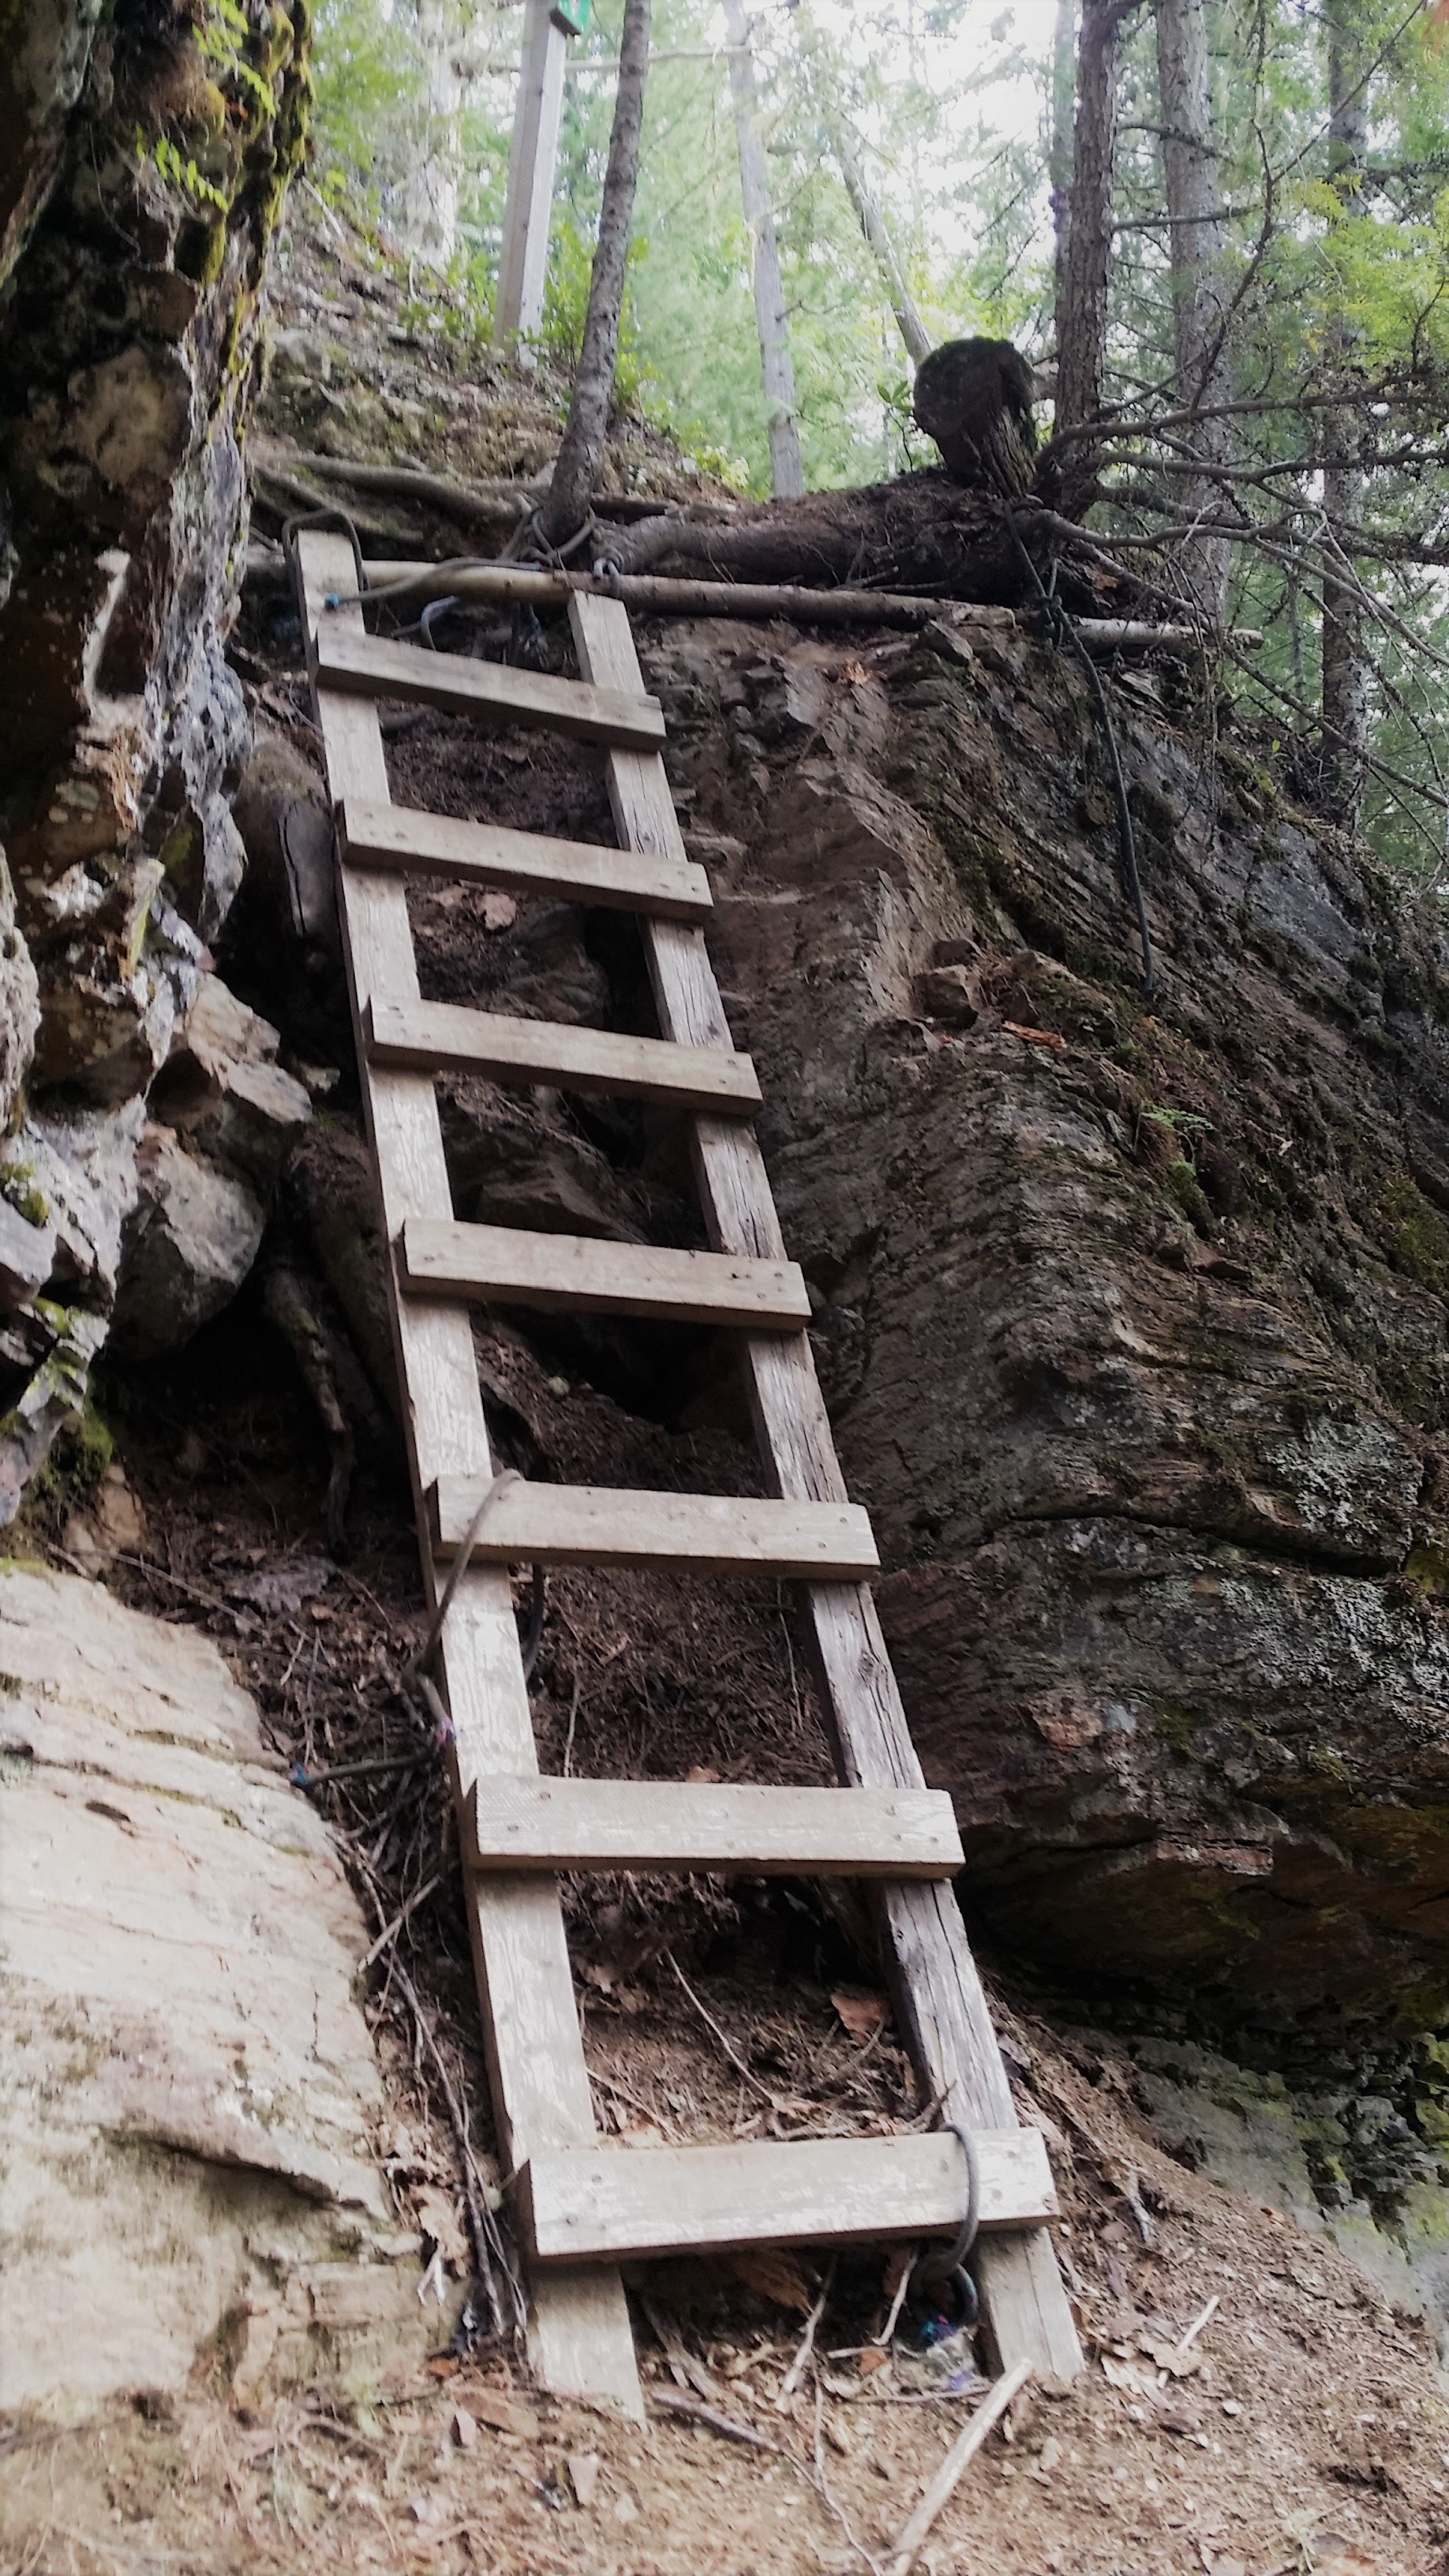 The old wood & rope ladder